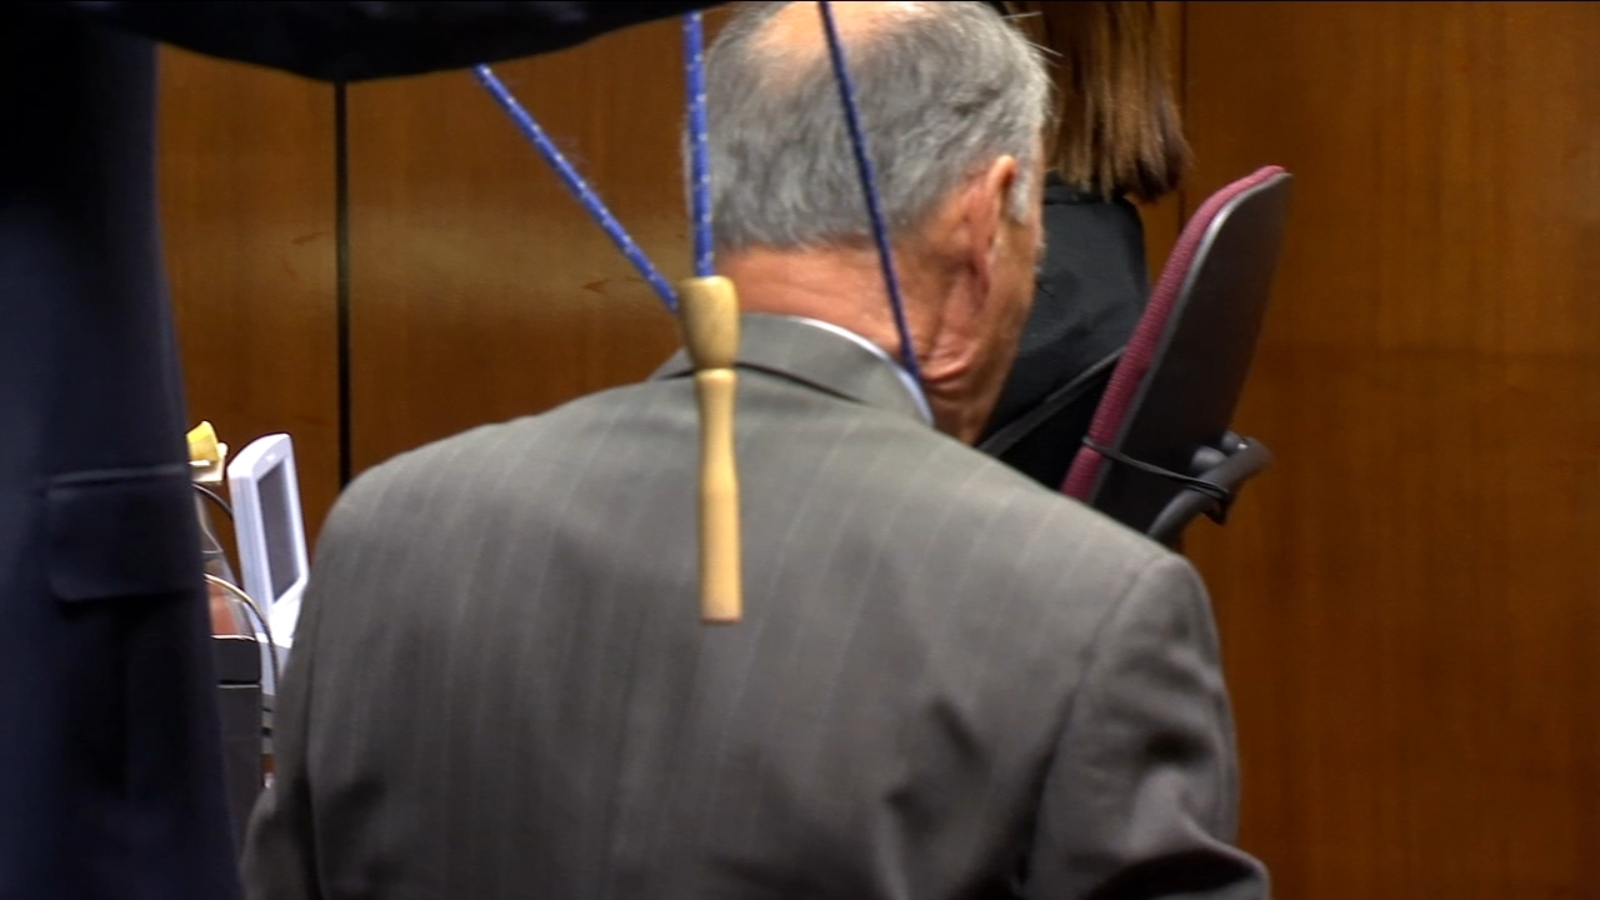 Students testify against ex-PE teacher accused of placing jump rope around their necks